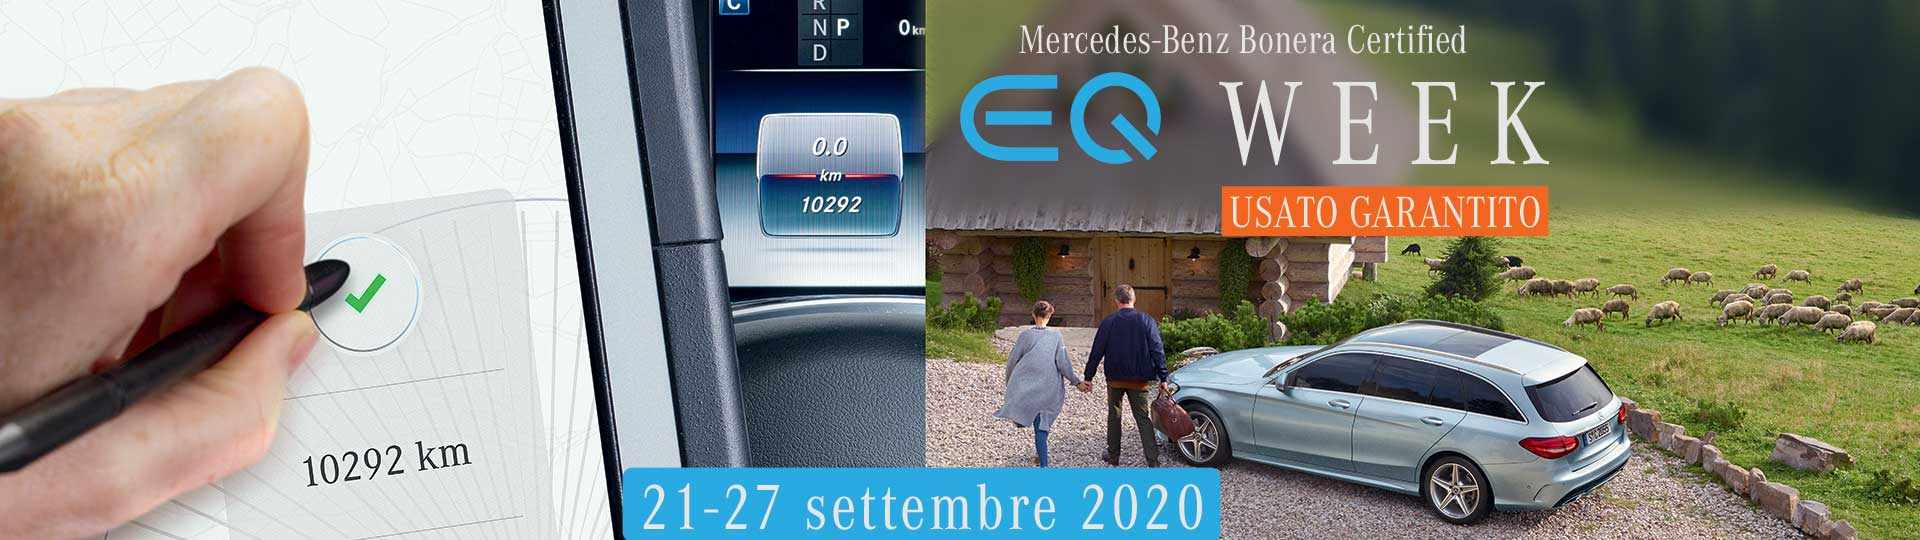 header_eq_week_certified_settembre_2020.jpg